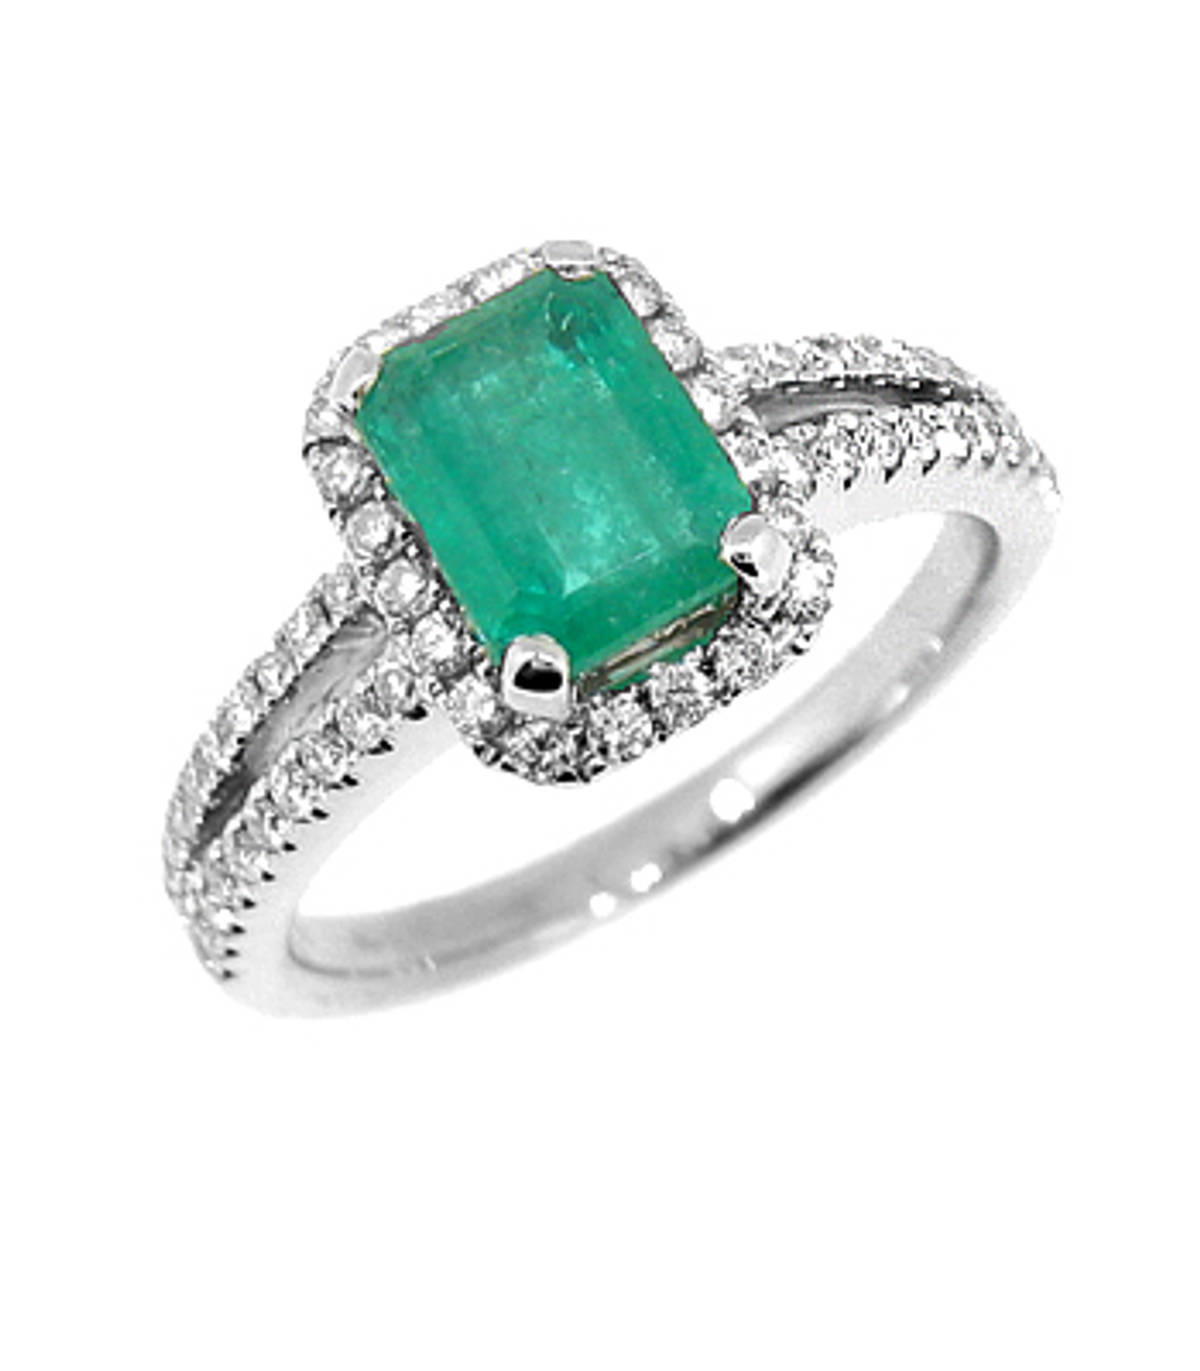 Emerald and diamond cluster ring with double row diamond shouldersPictured item: octagonal emerald: 1.06ct/diamonds: brilliant cut 0.36ct set in 18k white gold